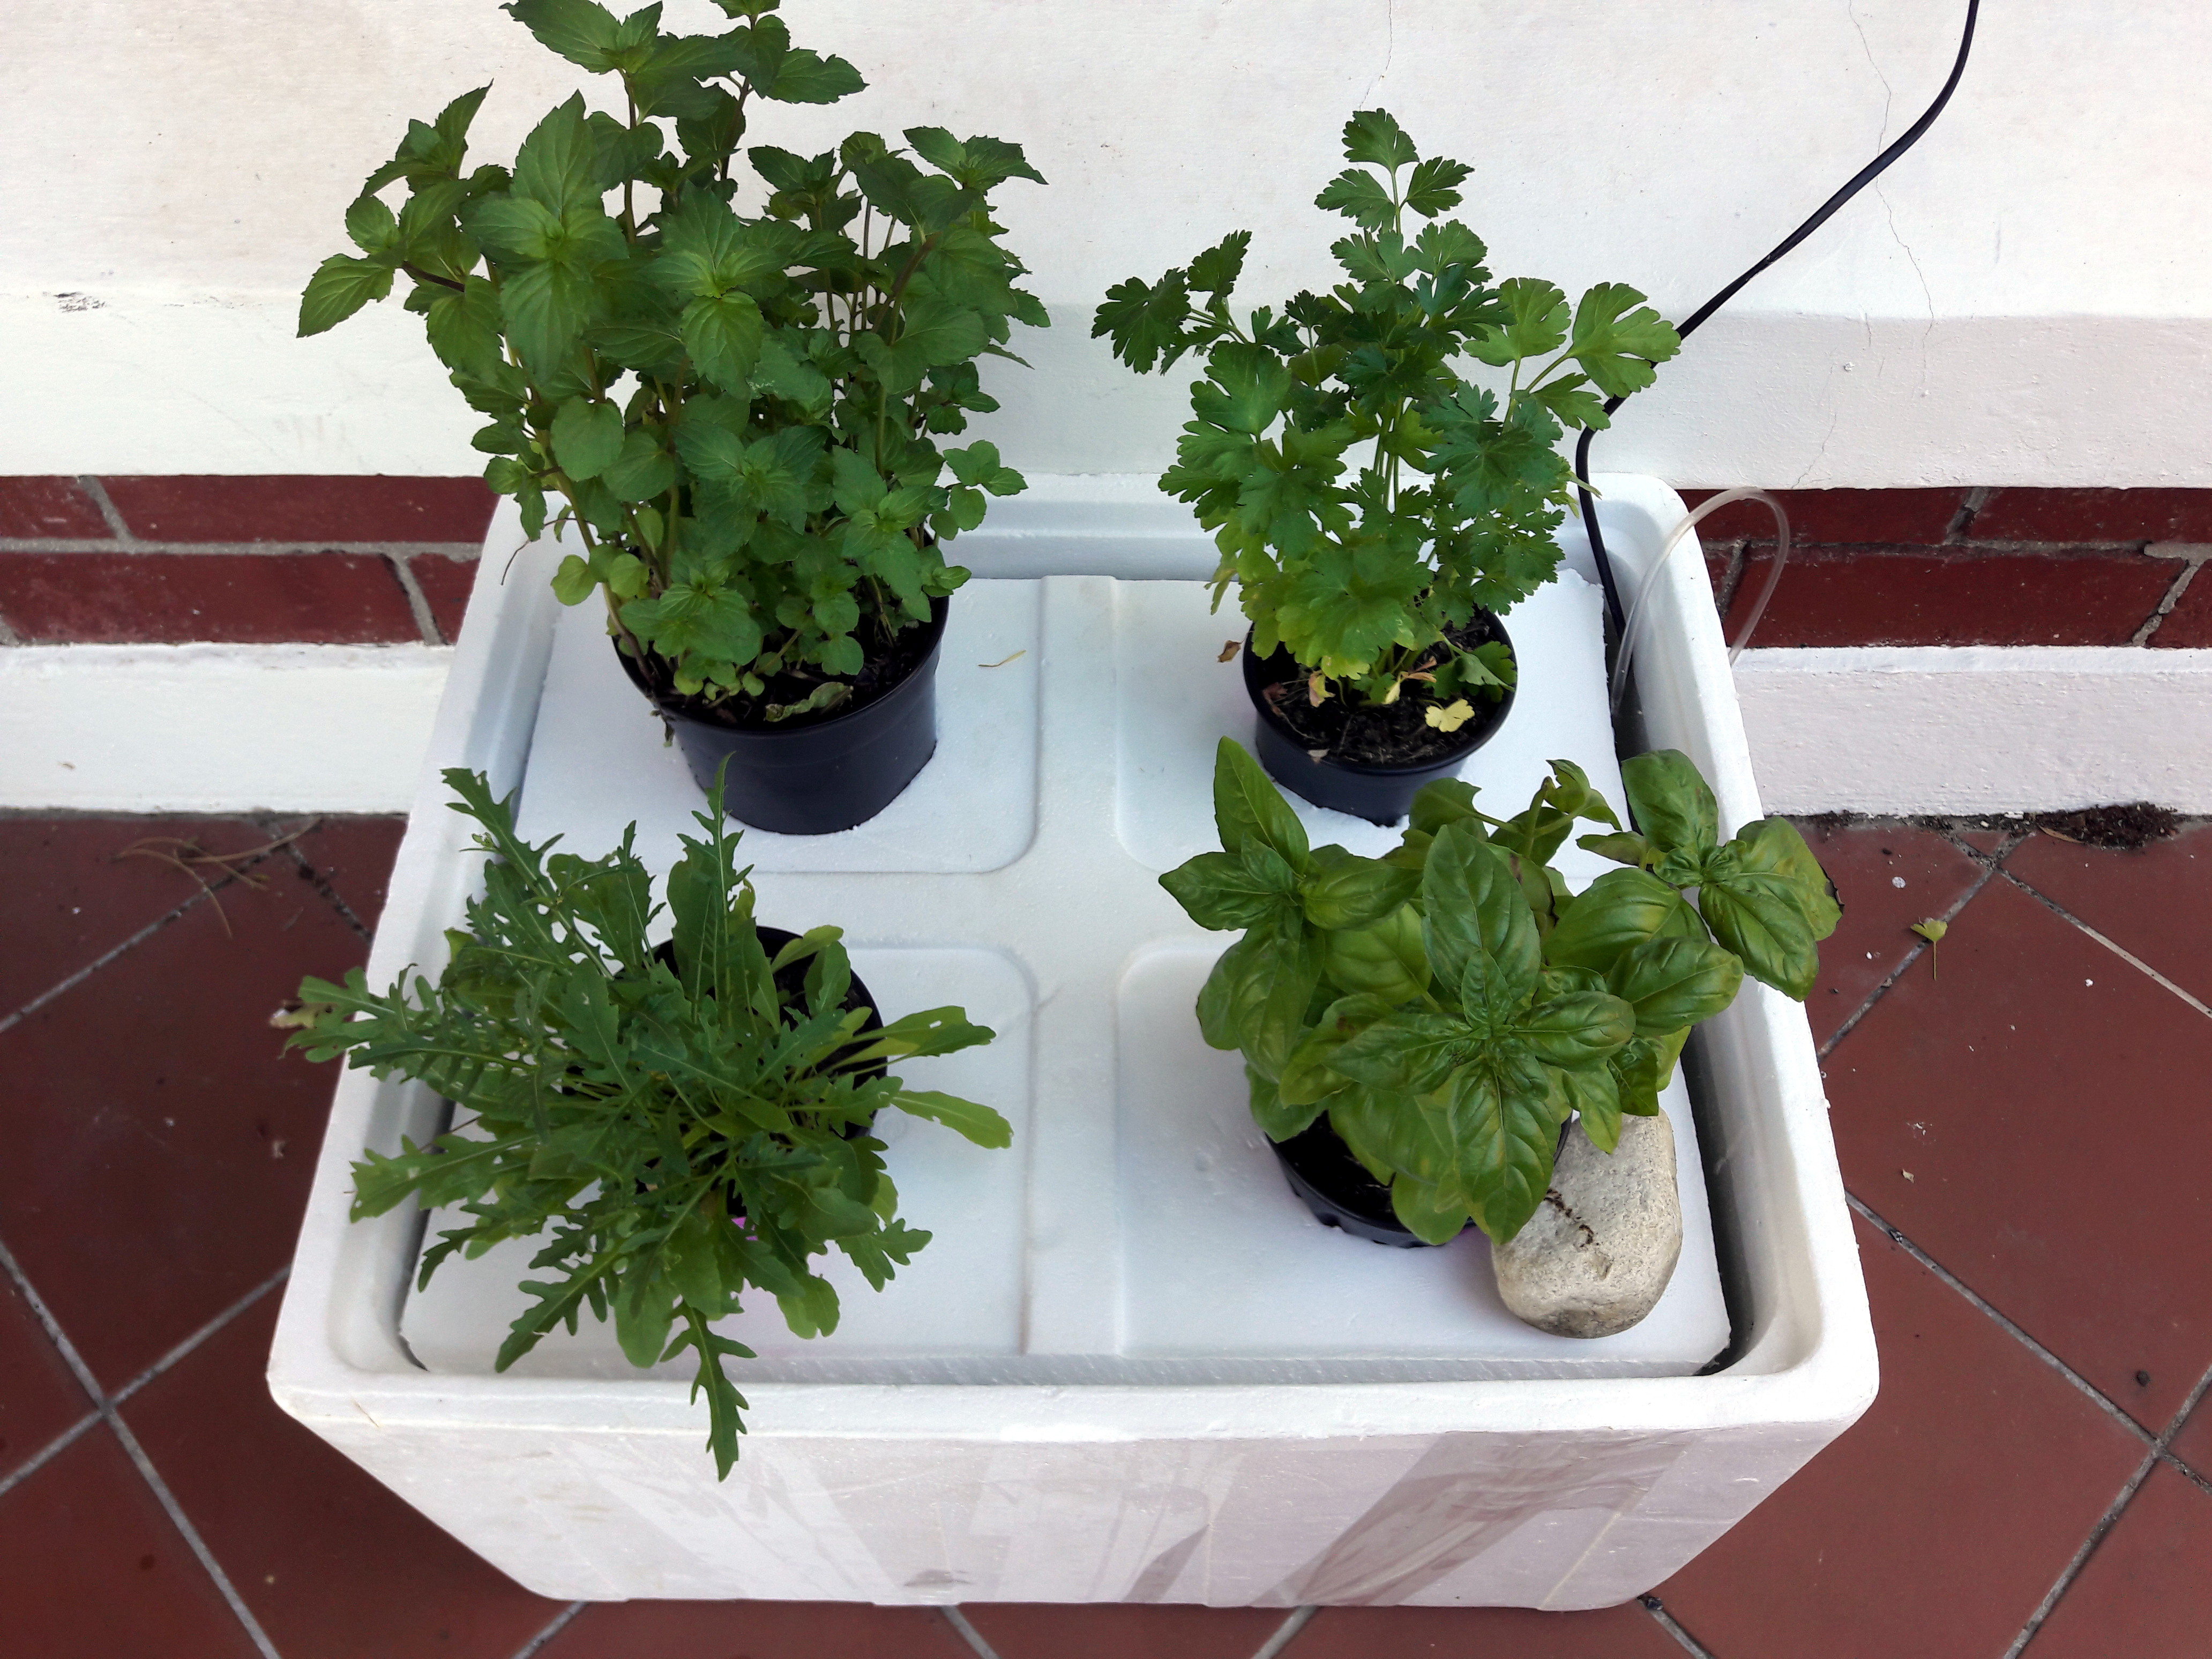 Basic Hydroponics System with Herbs